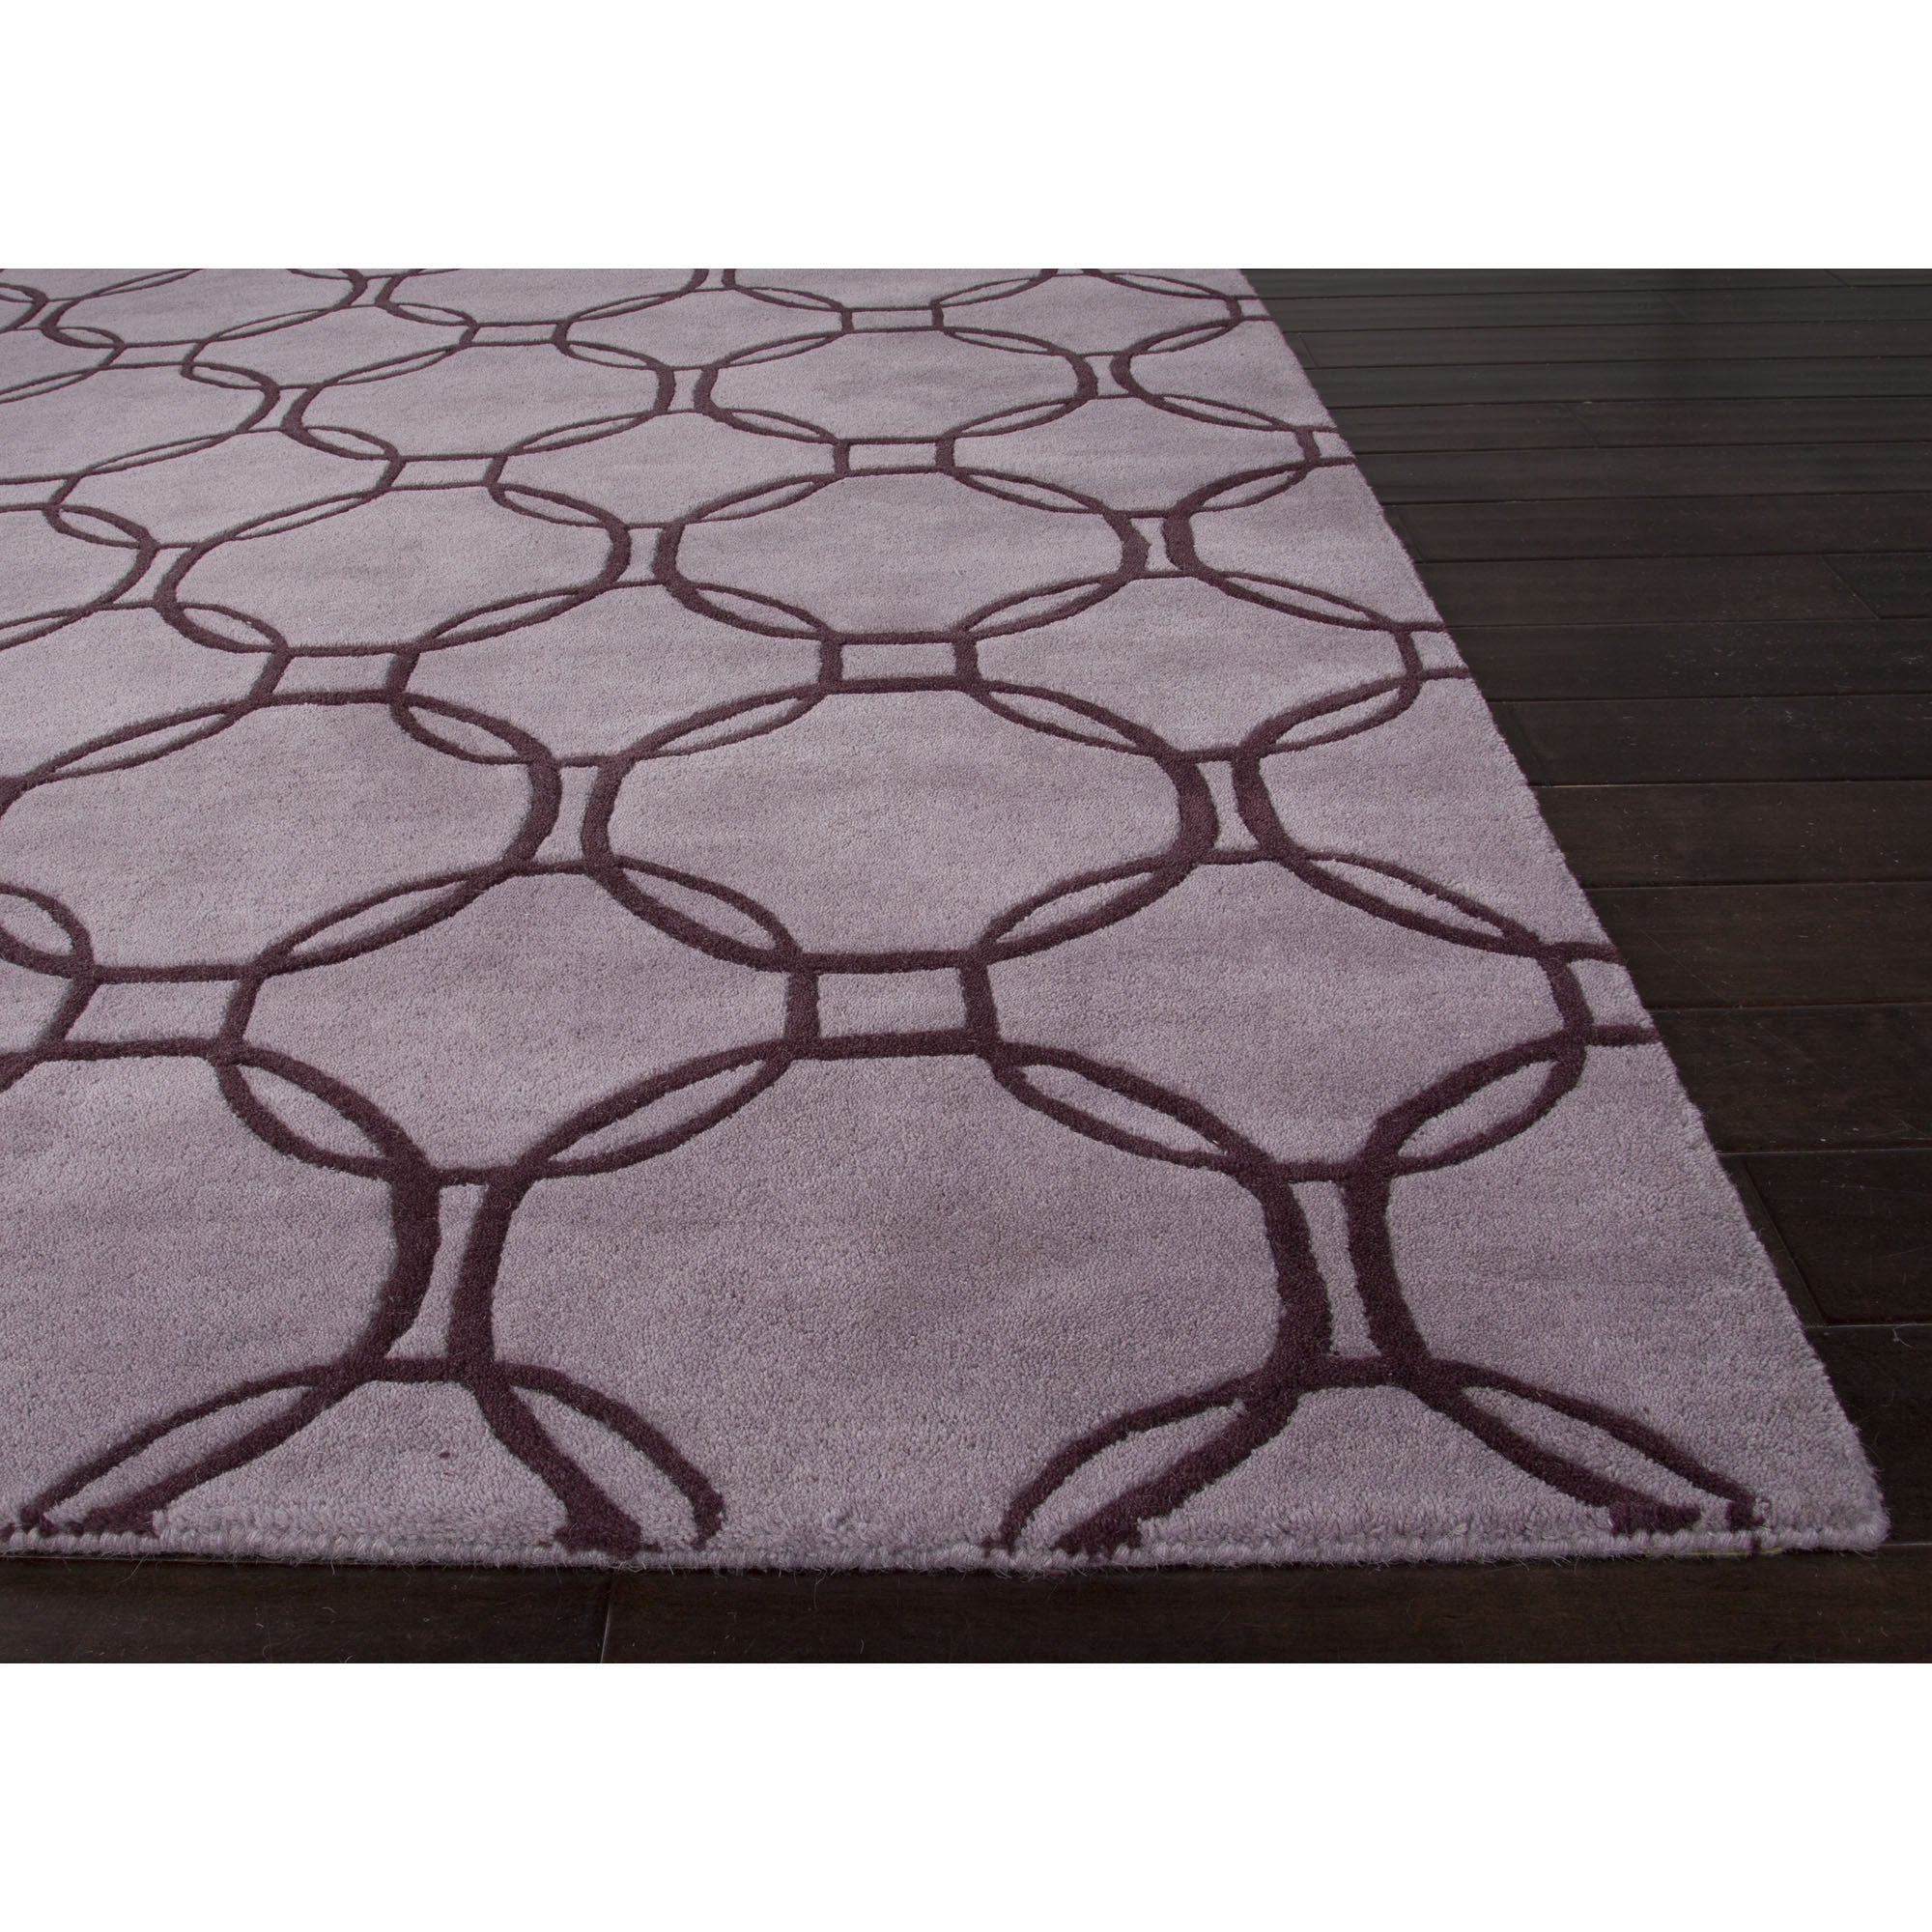 Jaipur rugs modern geometric pattern purple taupe wool for Modern wool area rugs